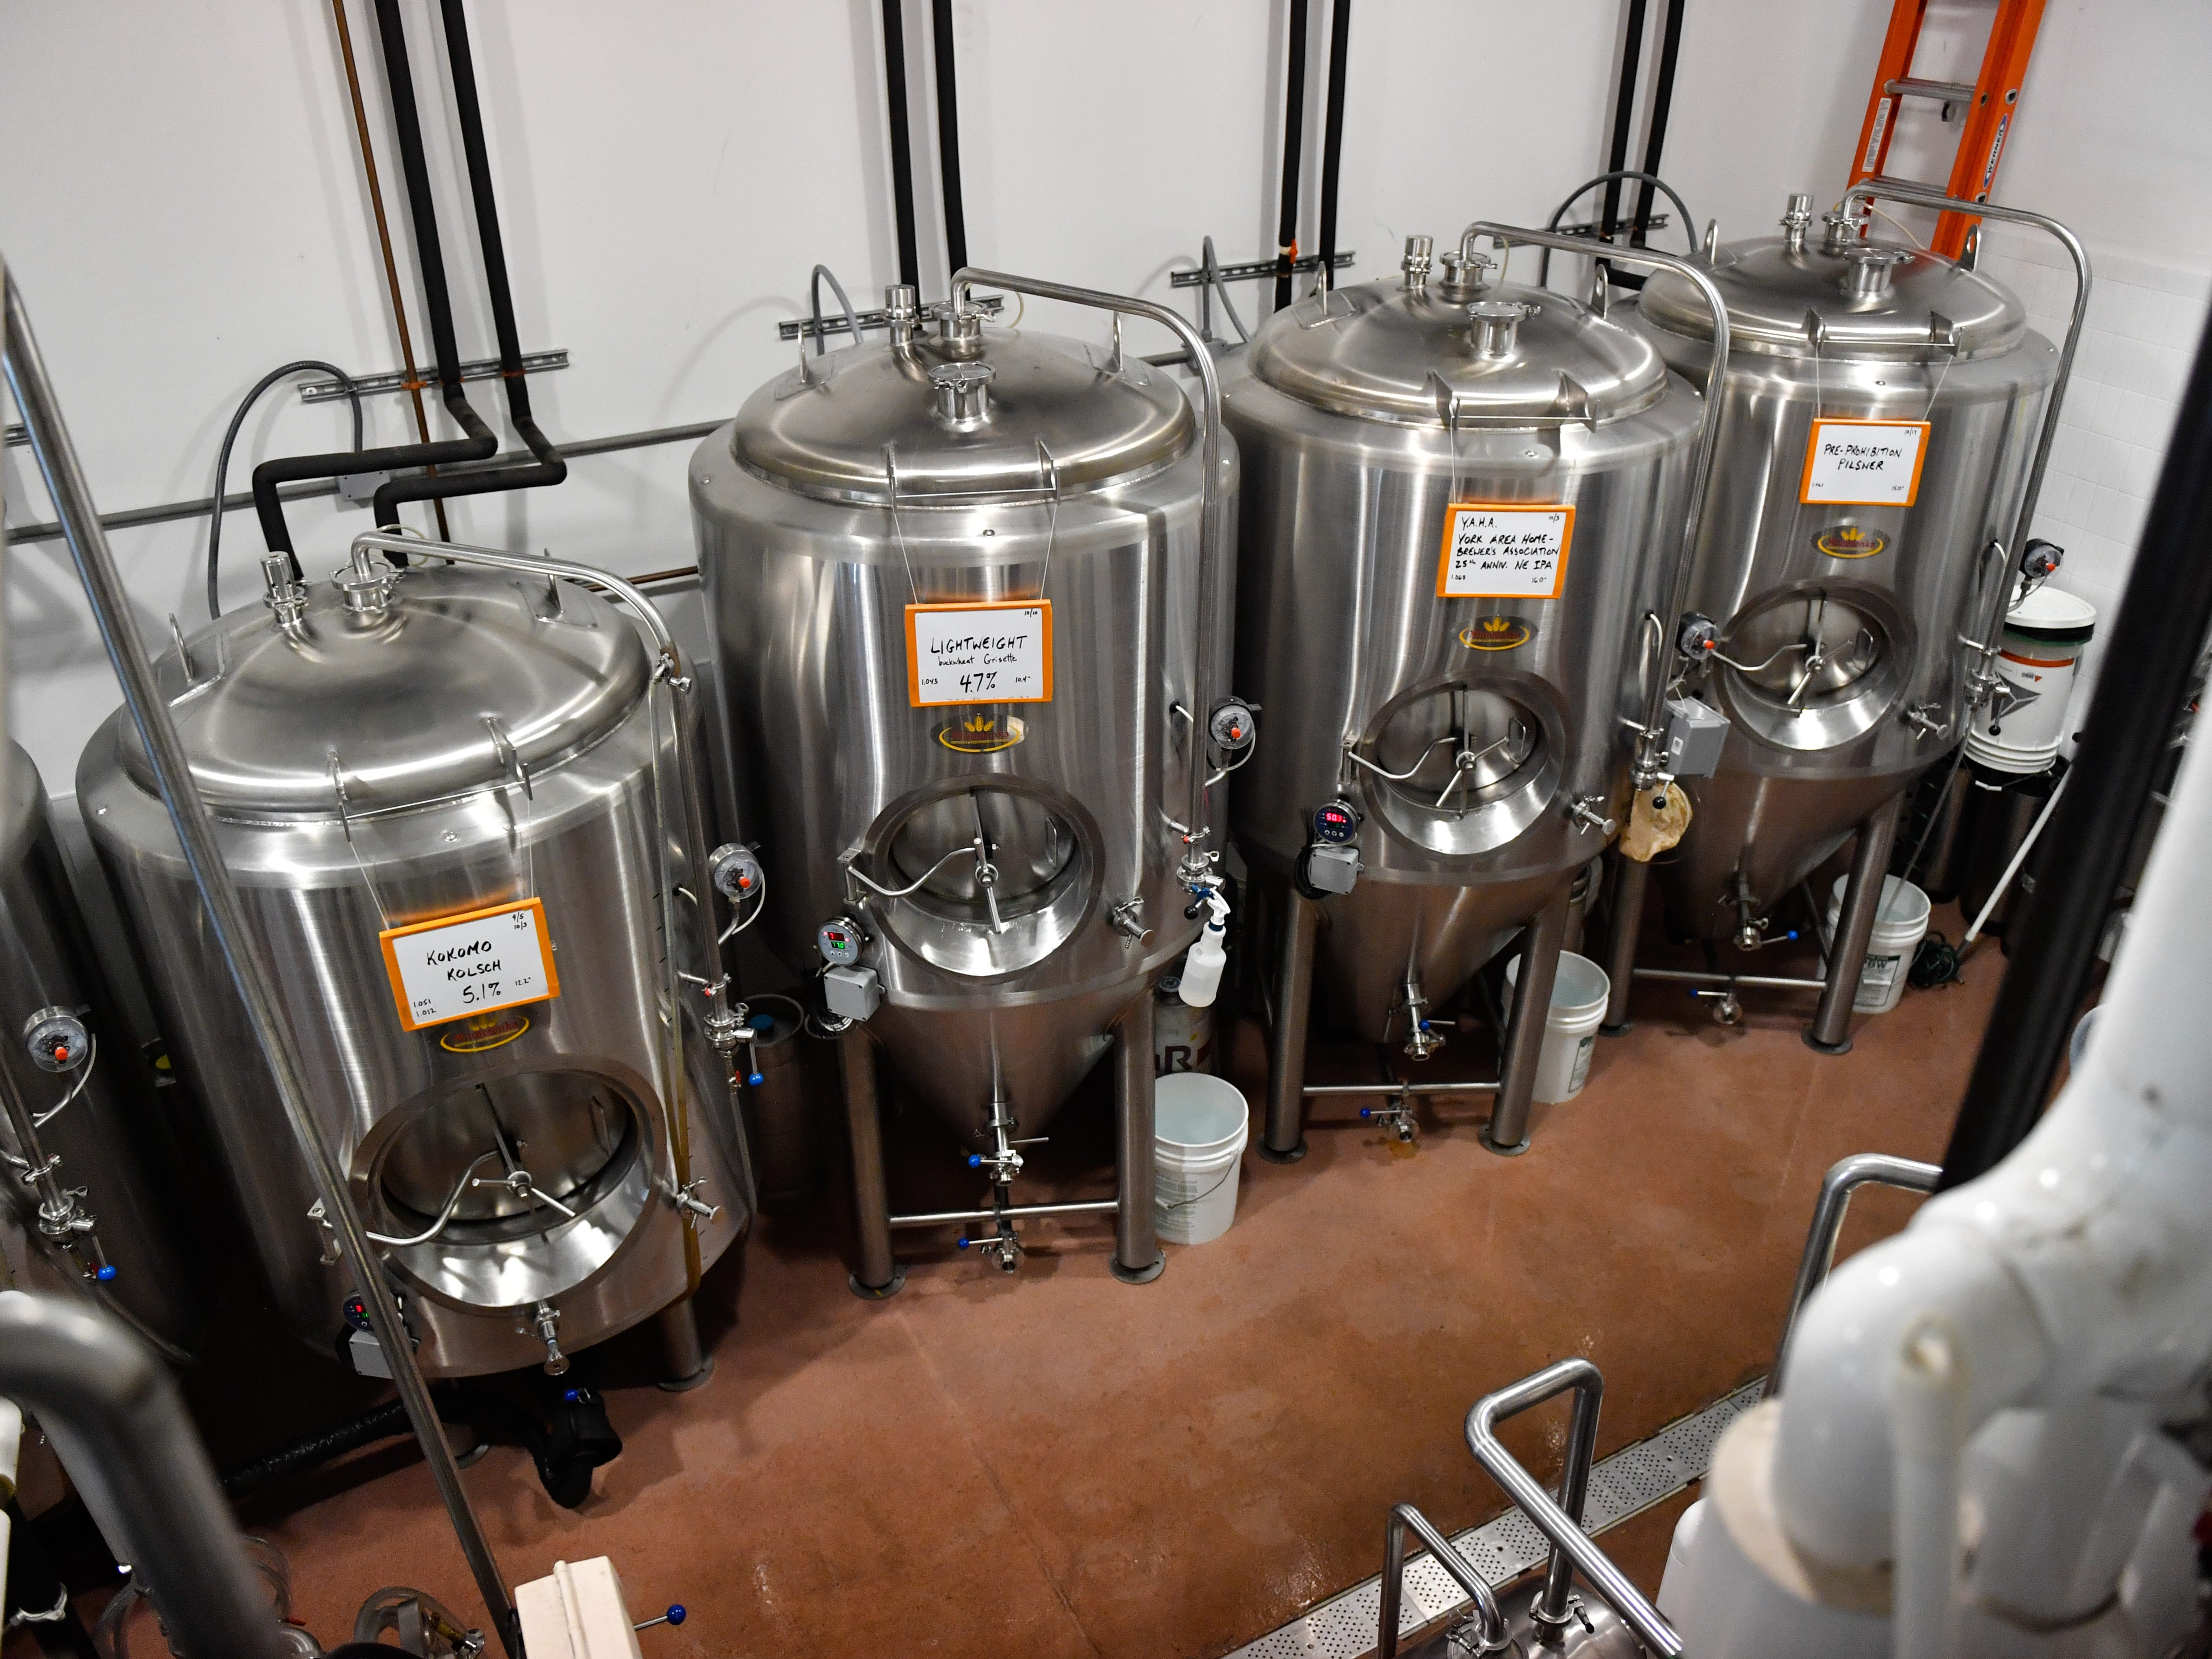 The brewery in Mexitaly is filled with a wide variety of  beers waiting to be enjoyed, October 19, 2018.